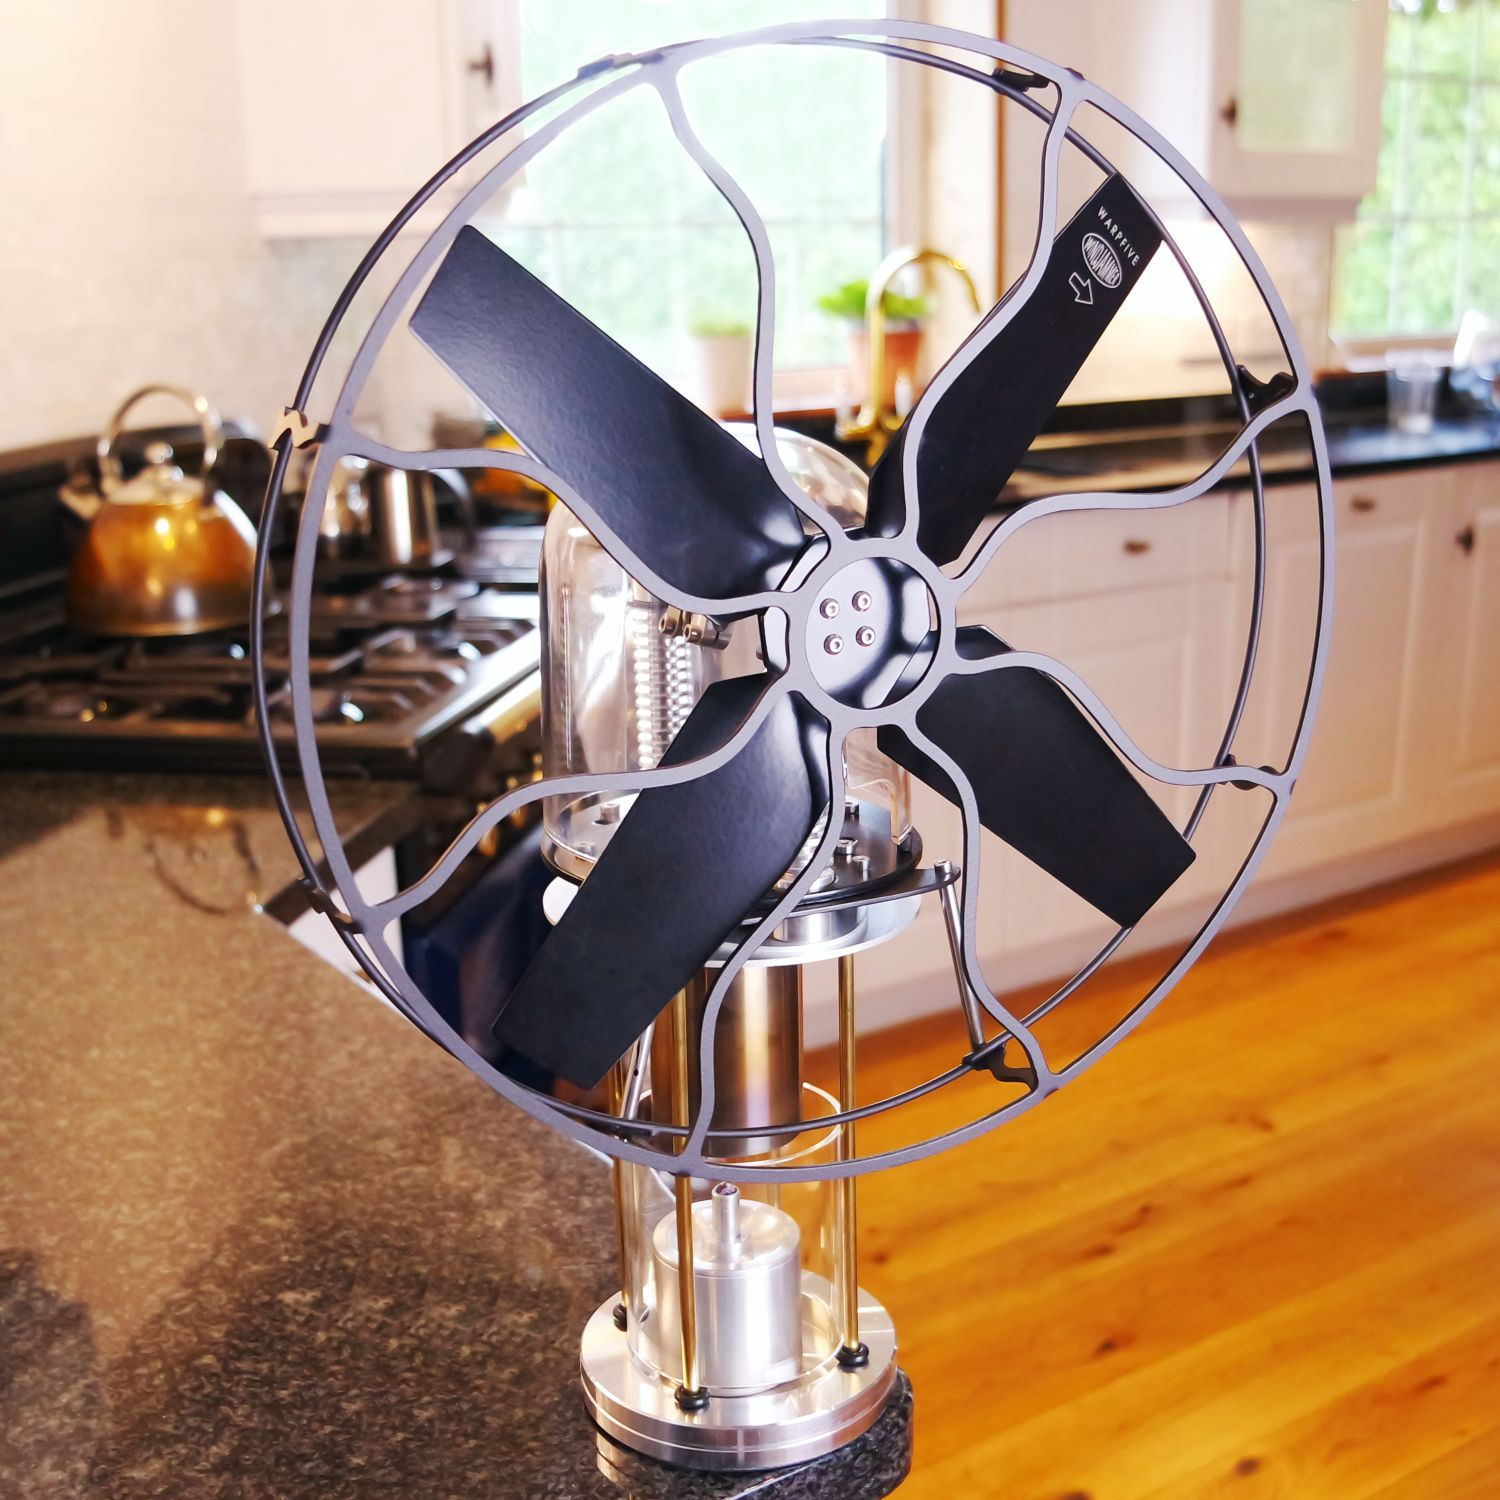 Classic style Stirling engine fan